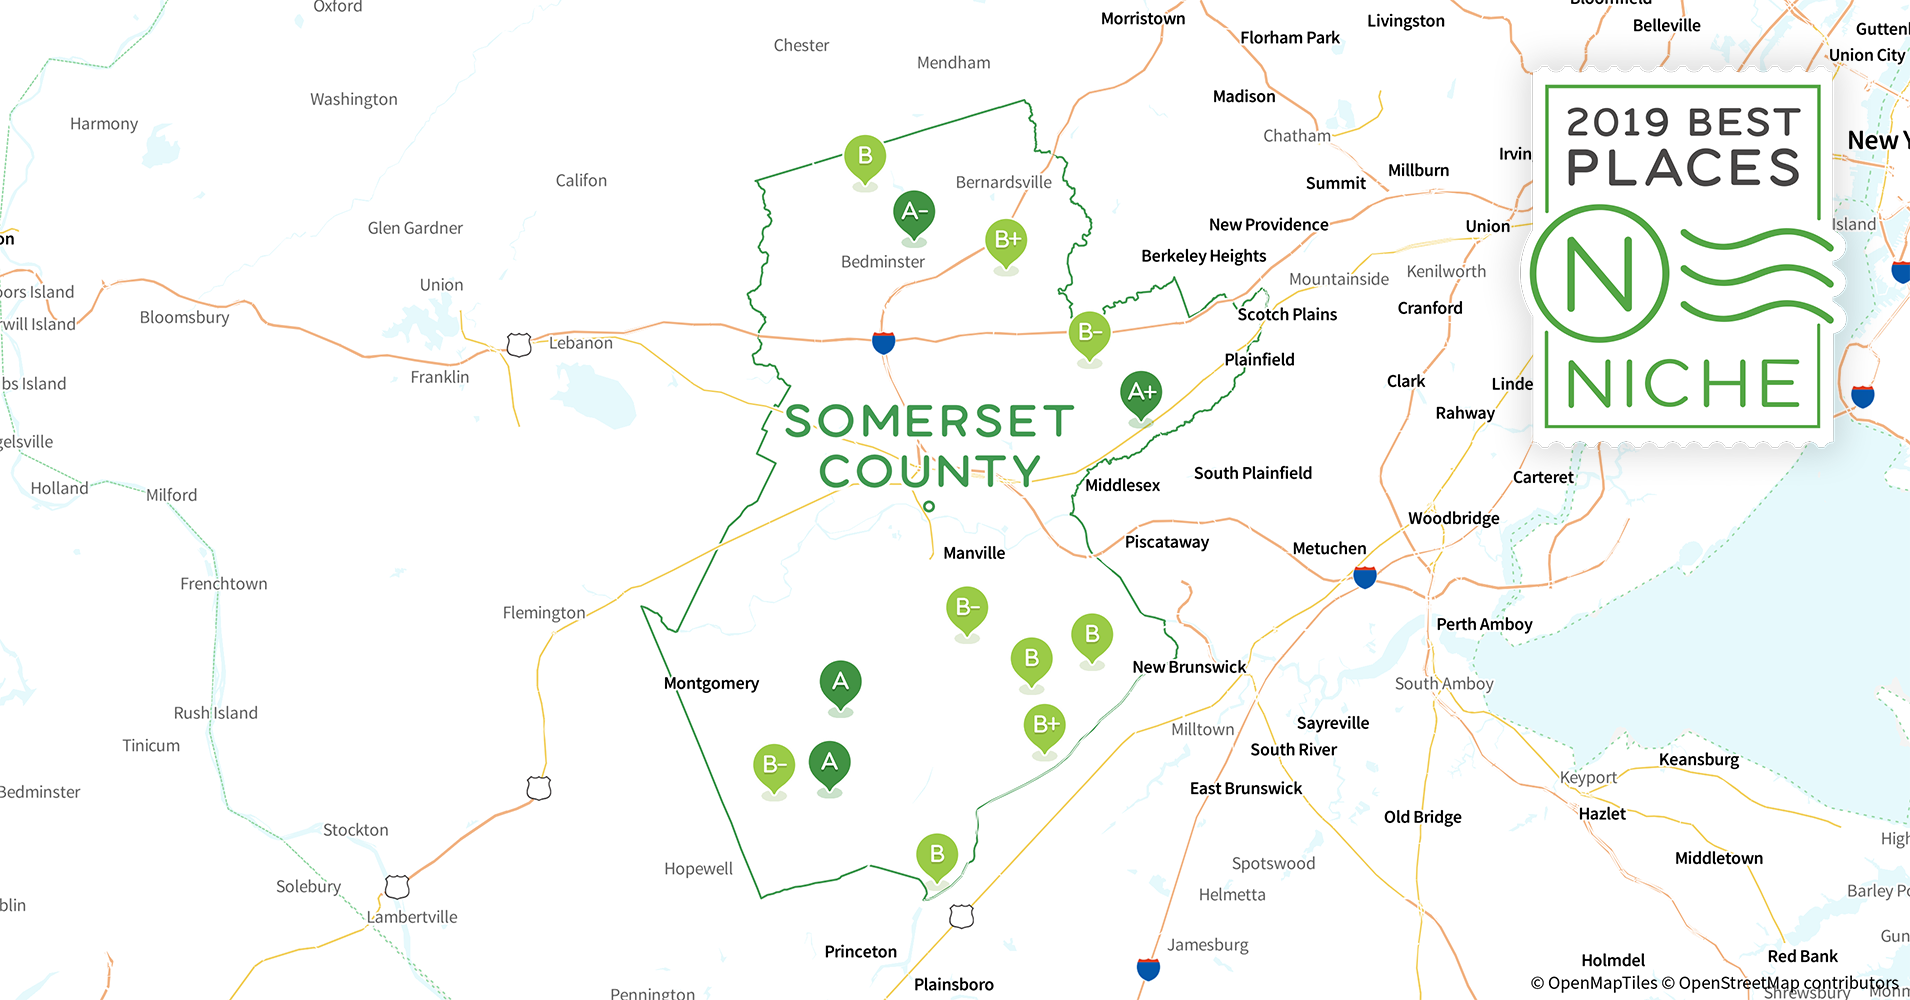 2019 Best Places to Live in Somerset County, NJ - Niche Map Of Es County Nj on map of nj districts, map of nj train stations, map of nj warren, map of nj town, map of nj elevation, map of nj by city, map sc county, map of nj hunting zones, map of nj shoreline, map of nj jackson, map of nj interstates, new york nj county, map of nj coast, map of nj township, map of nj colony, map of nj utilities, map of nj regions, map of nj counties, map of nj state, map nc county,